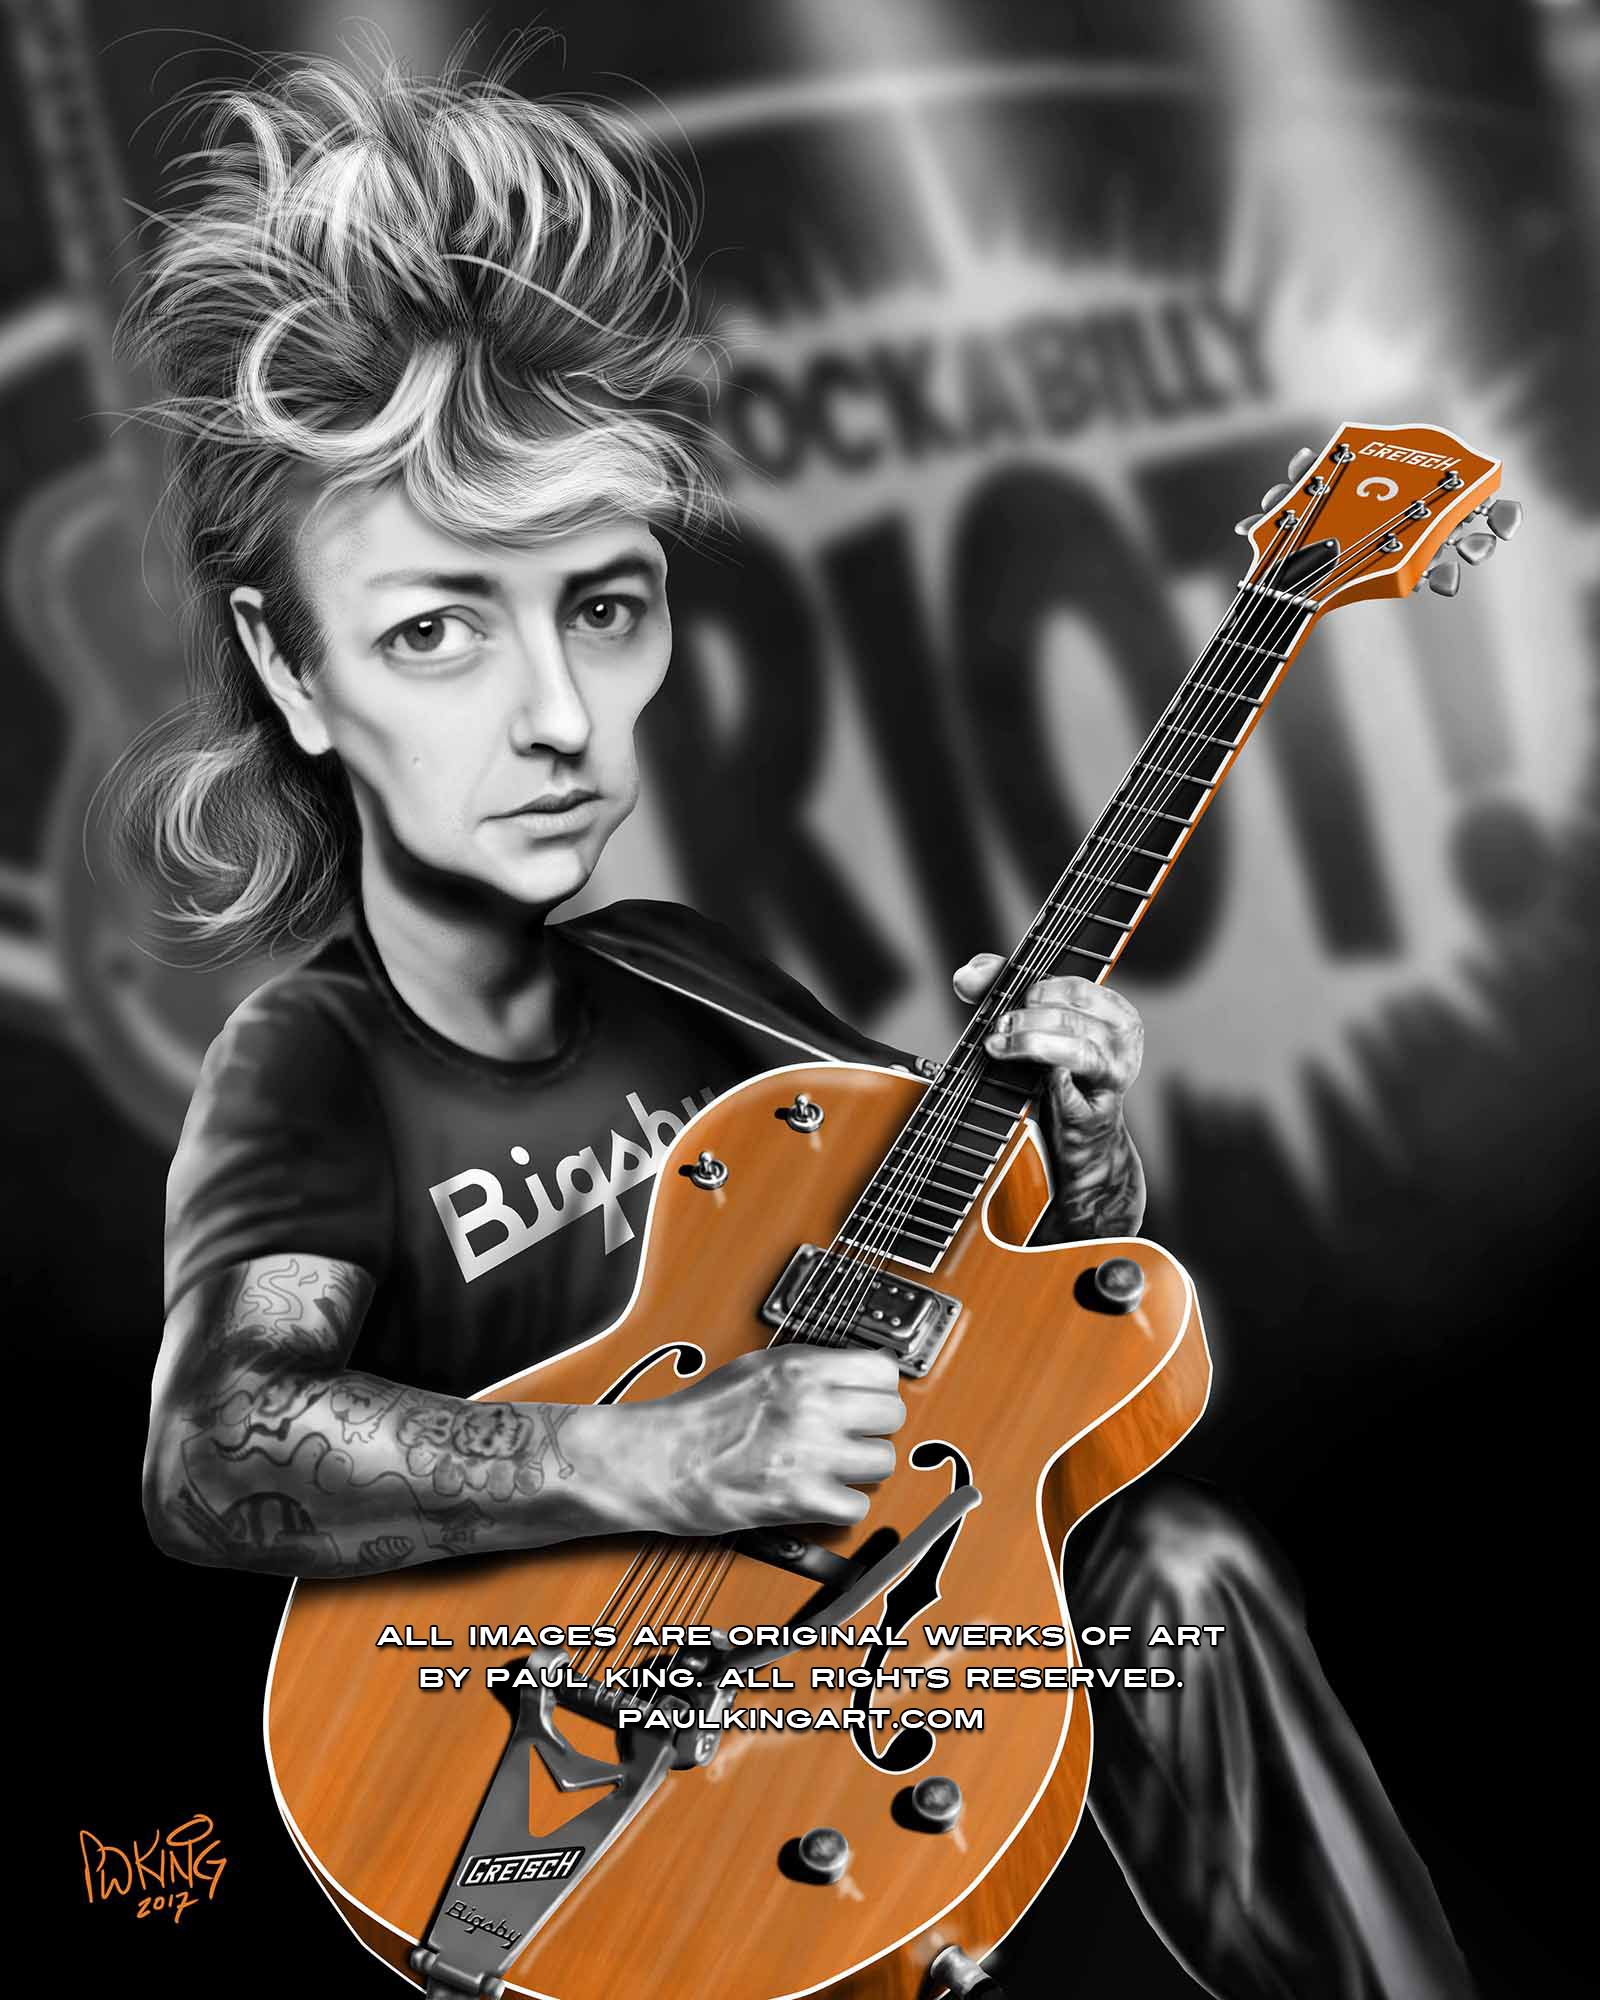 Brian Setzer Caricature, singer, songwriter and lead